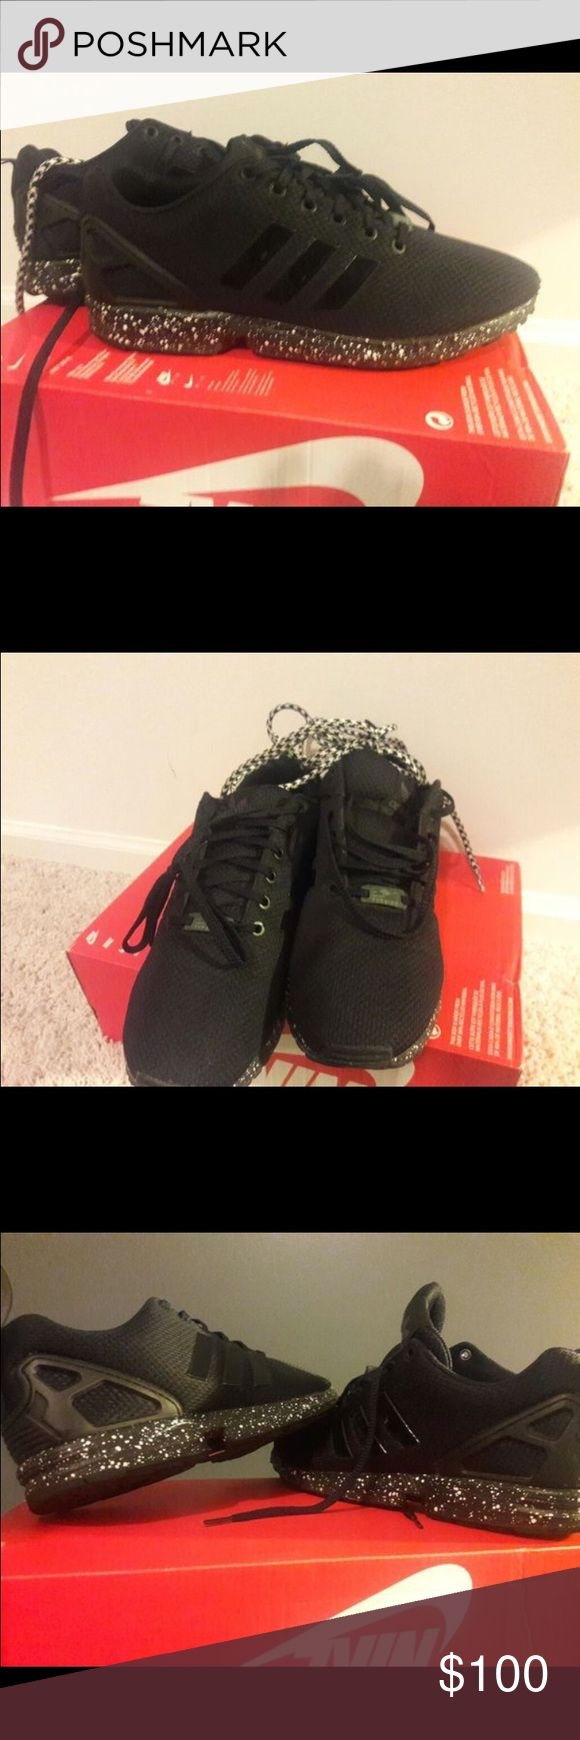 Adidas zx flux id Brand new ! Adidas Shoes Sneakers